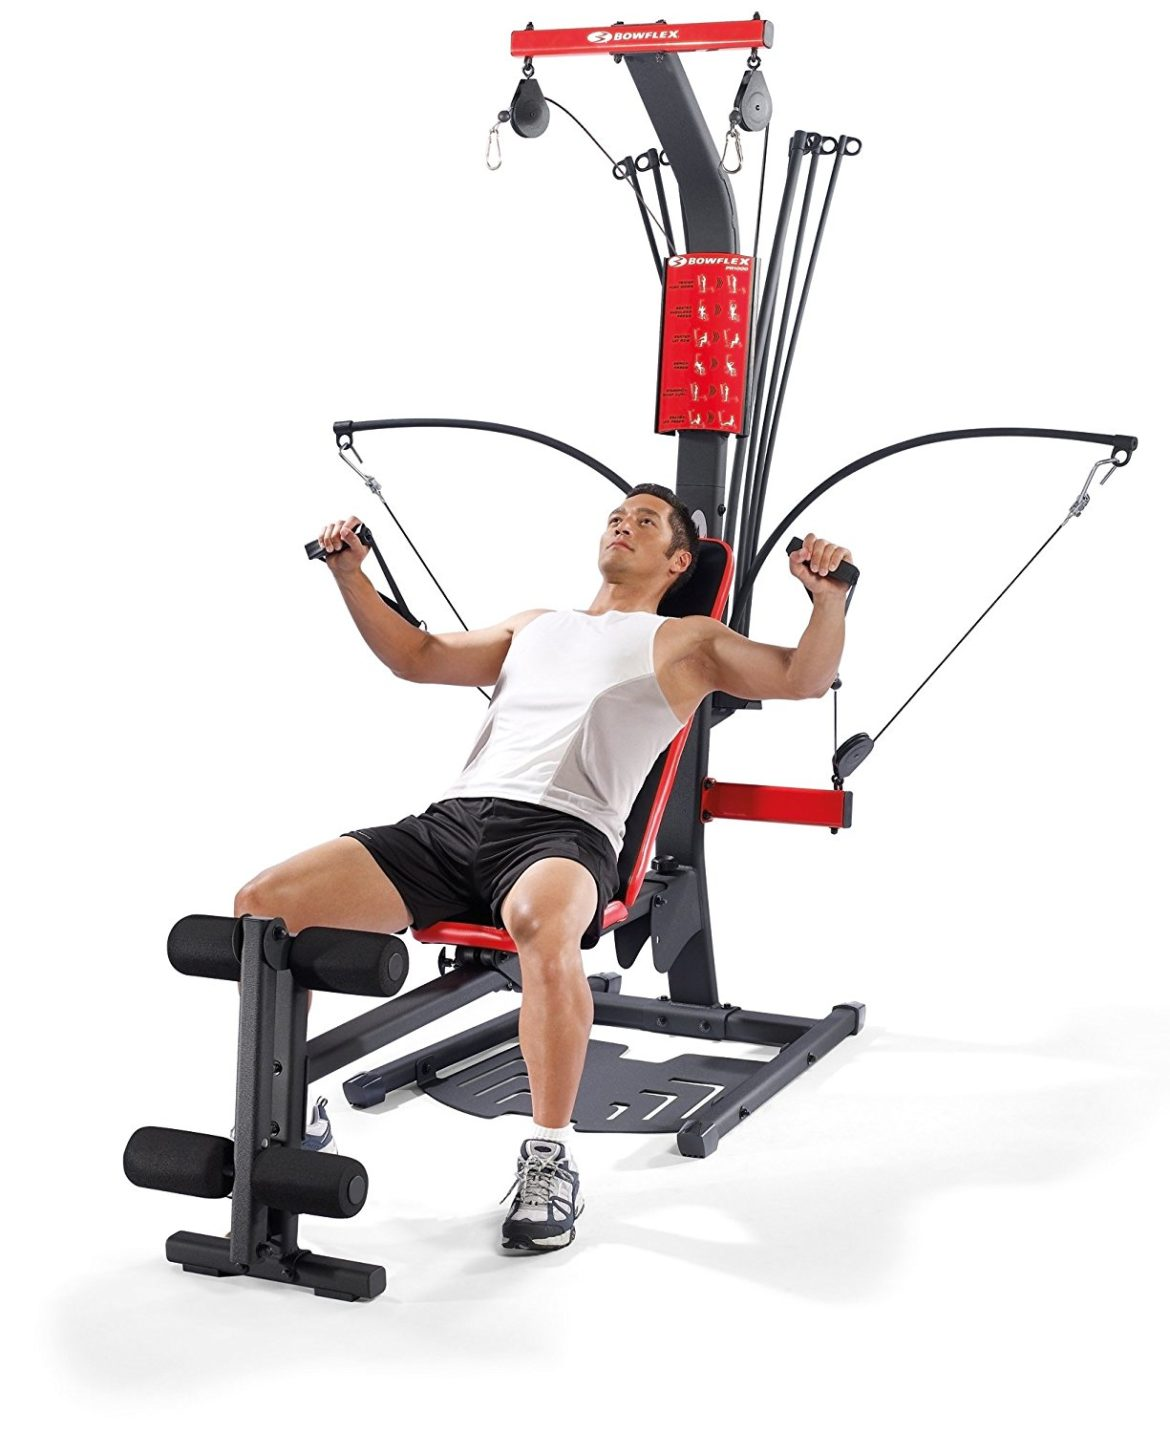 Bowflex PR1000 Home Gym: Perfect Entry Level Home Gym